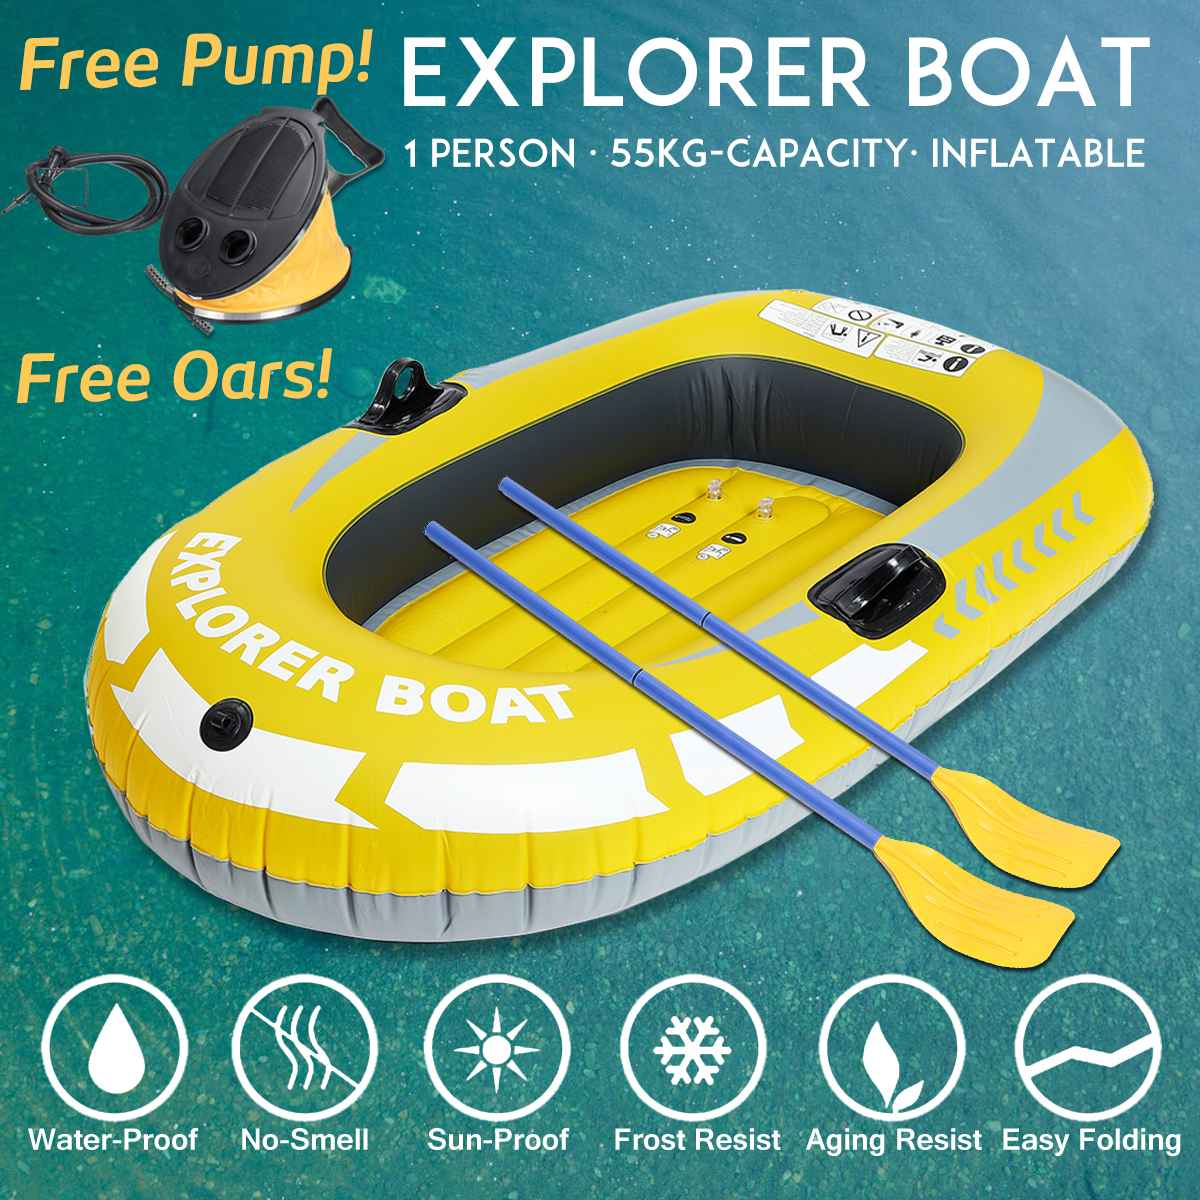 1//2 Person Inflatable PVC Boat Raft Waterproof Canoe Kayak Double Value Dinghy